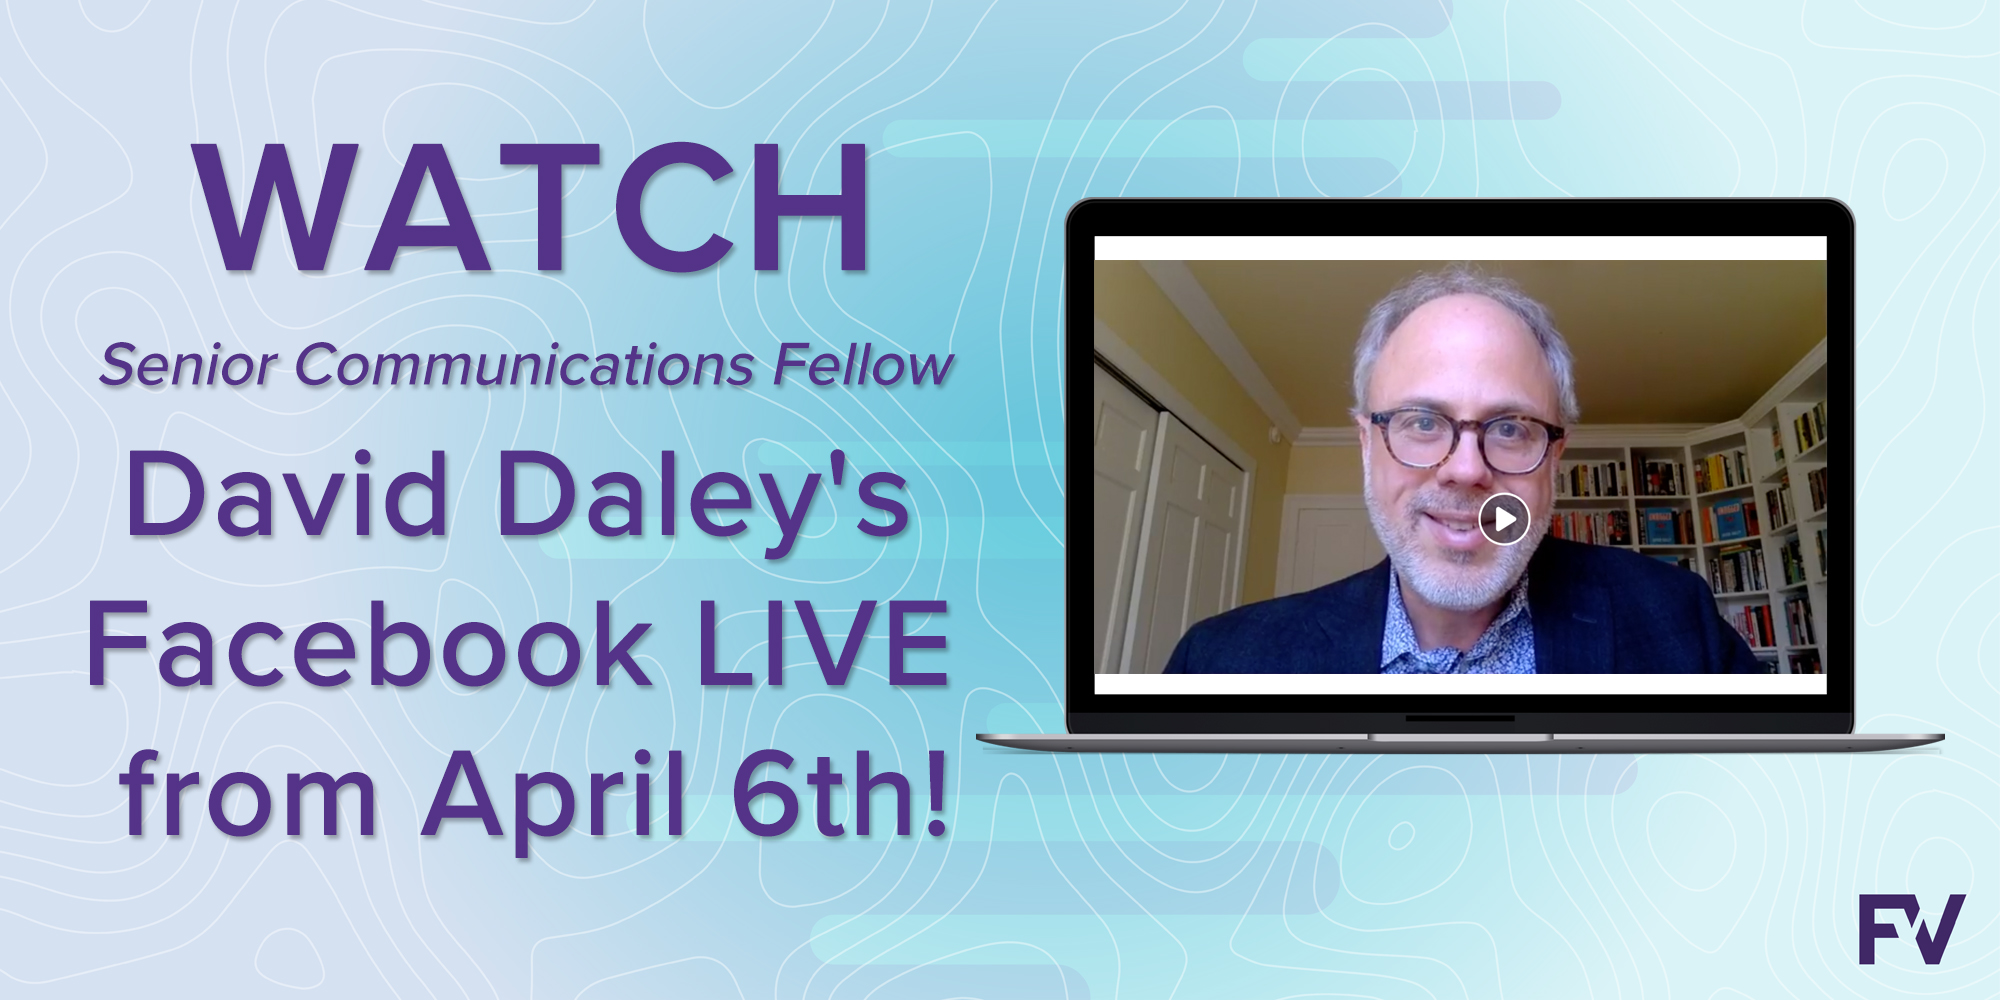 April 6: Facebook LIVE with Senior Communications Fellow David Daley